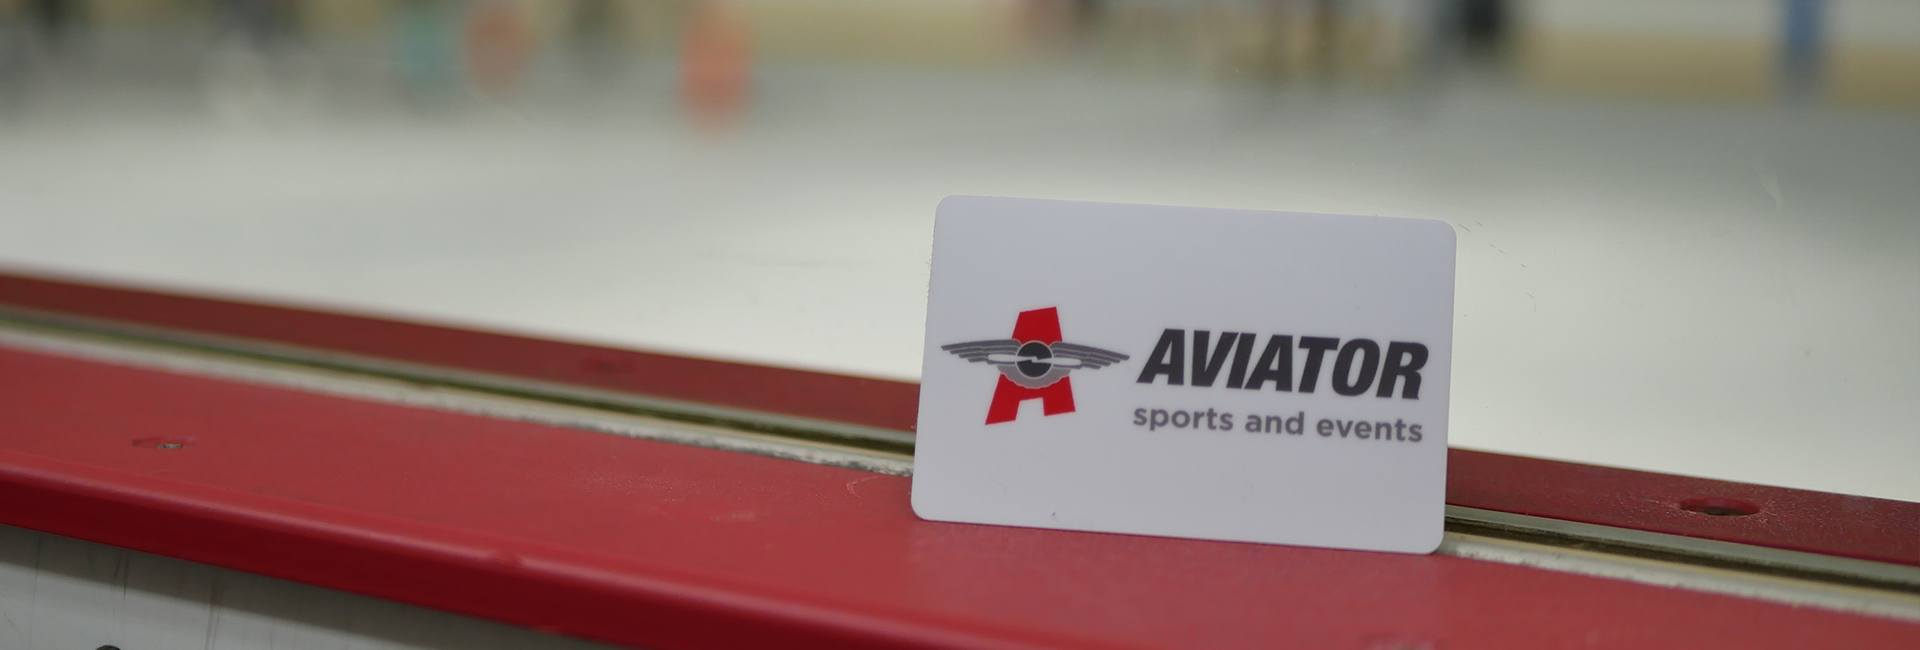 gift card, sports and events